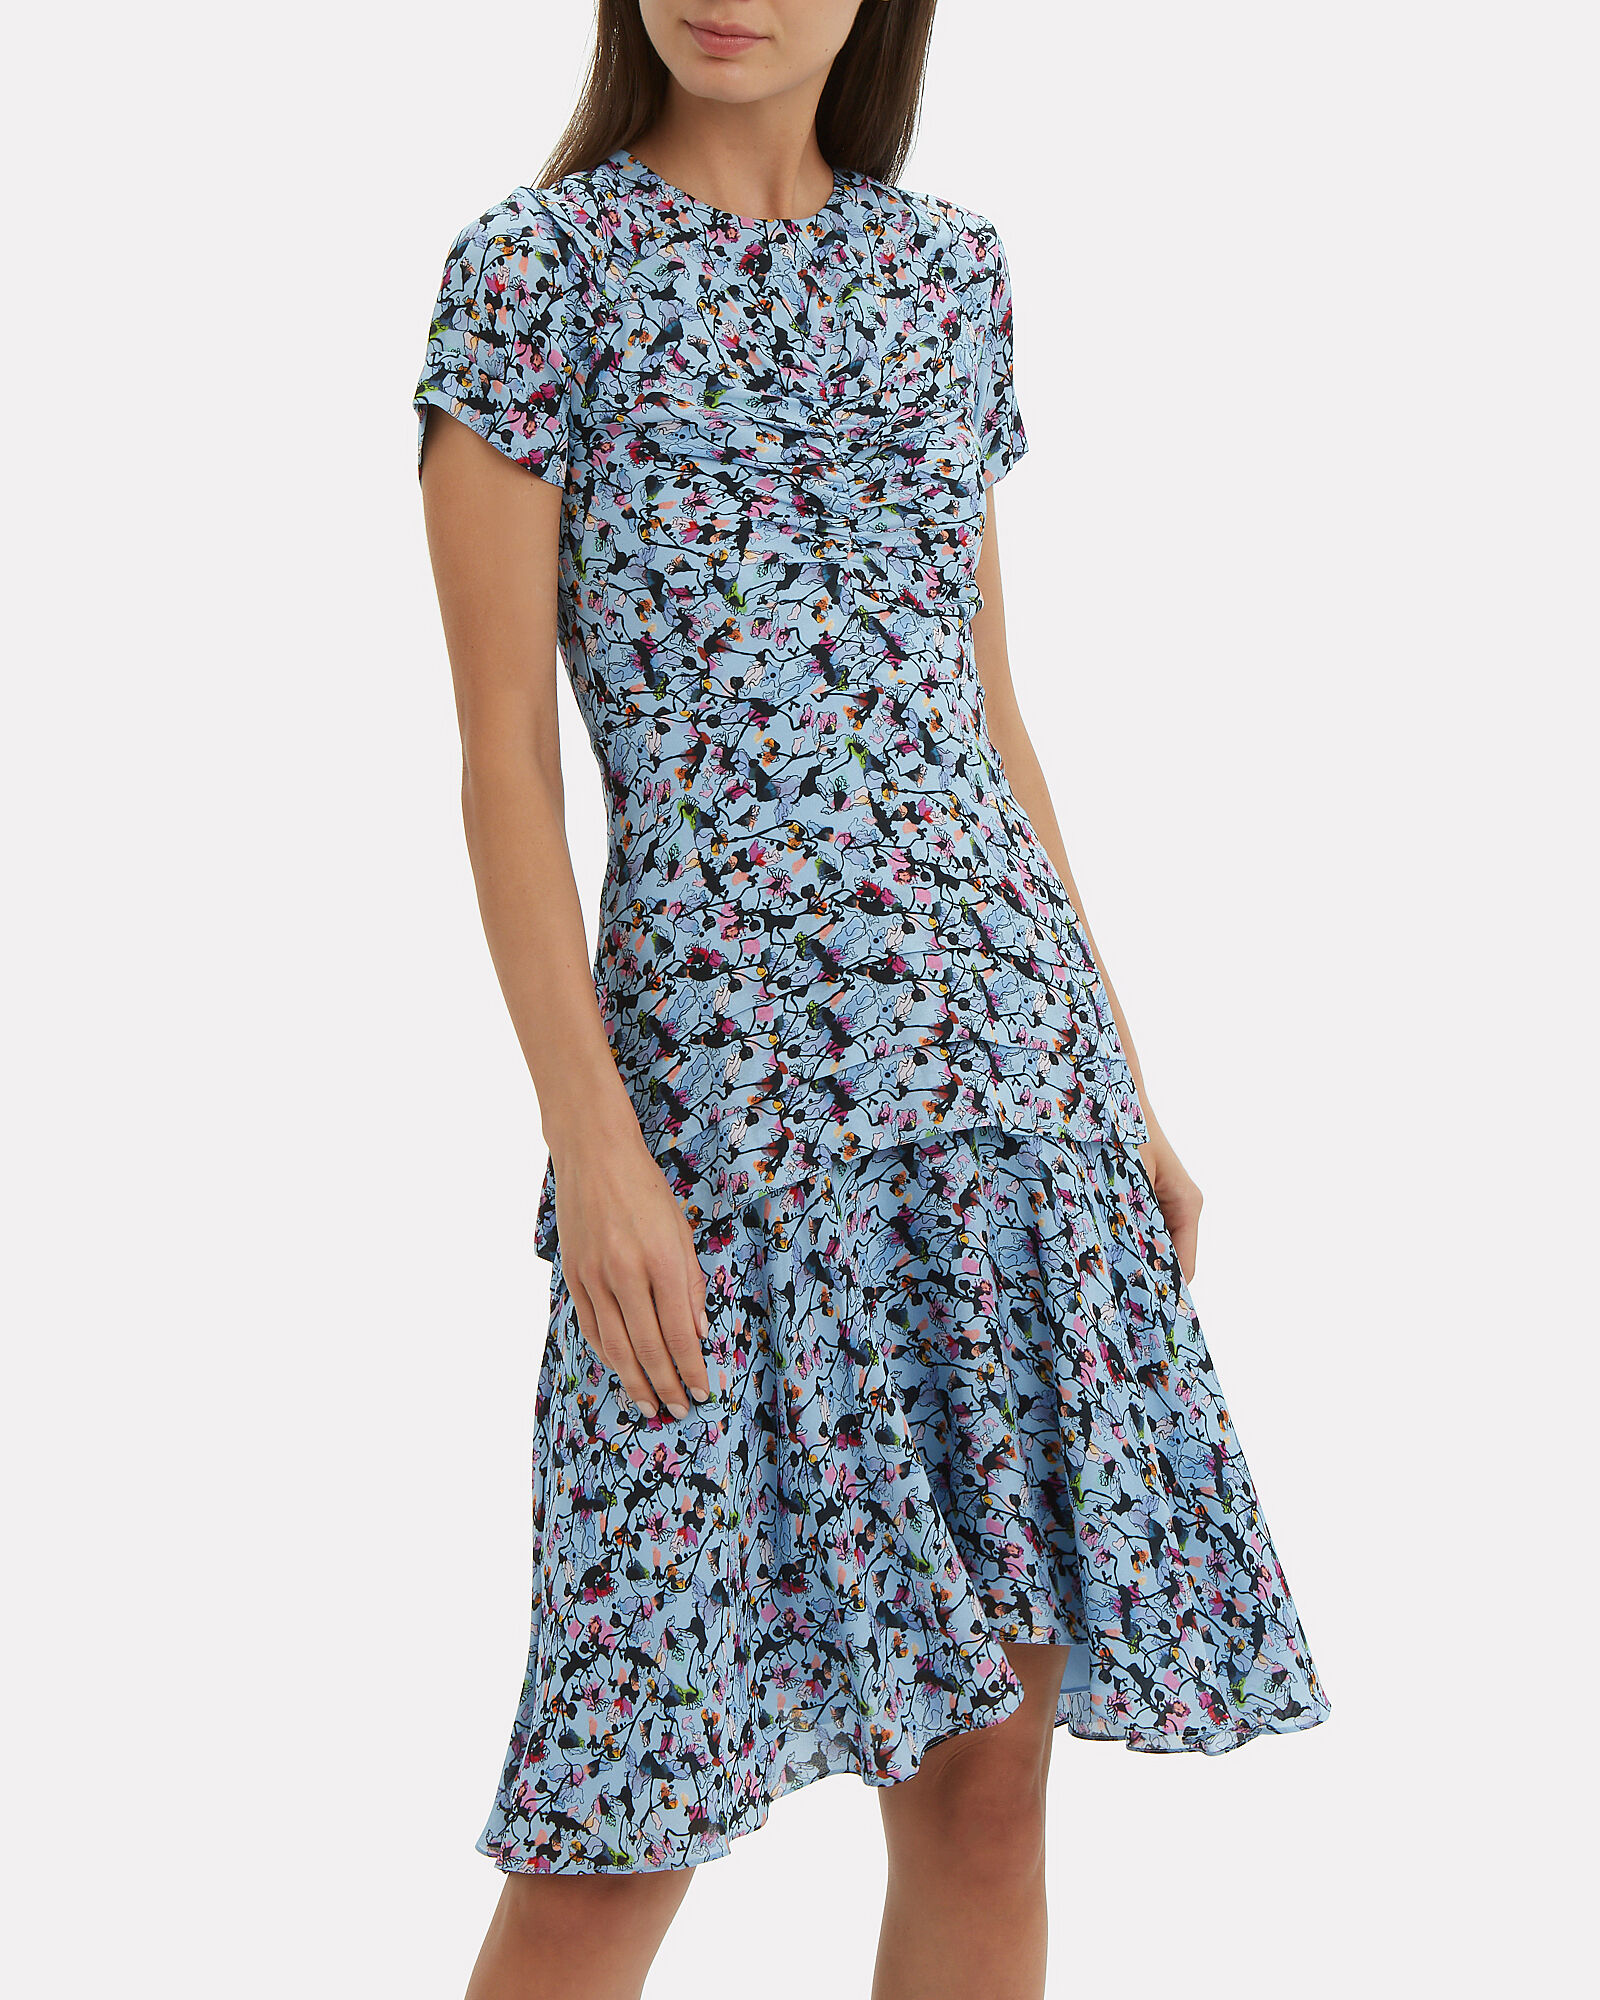 Floral Printed Dress, BLUE-MED, hi-res